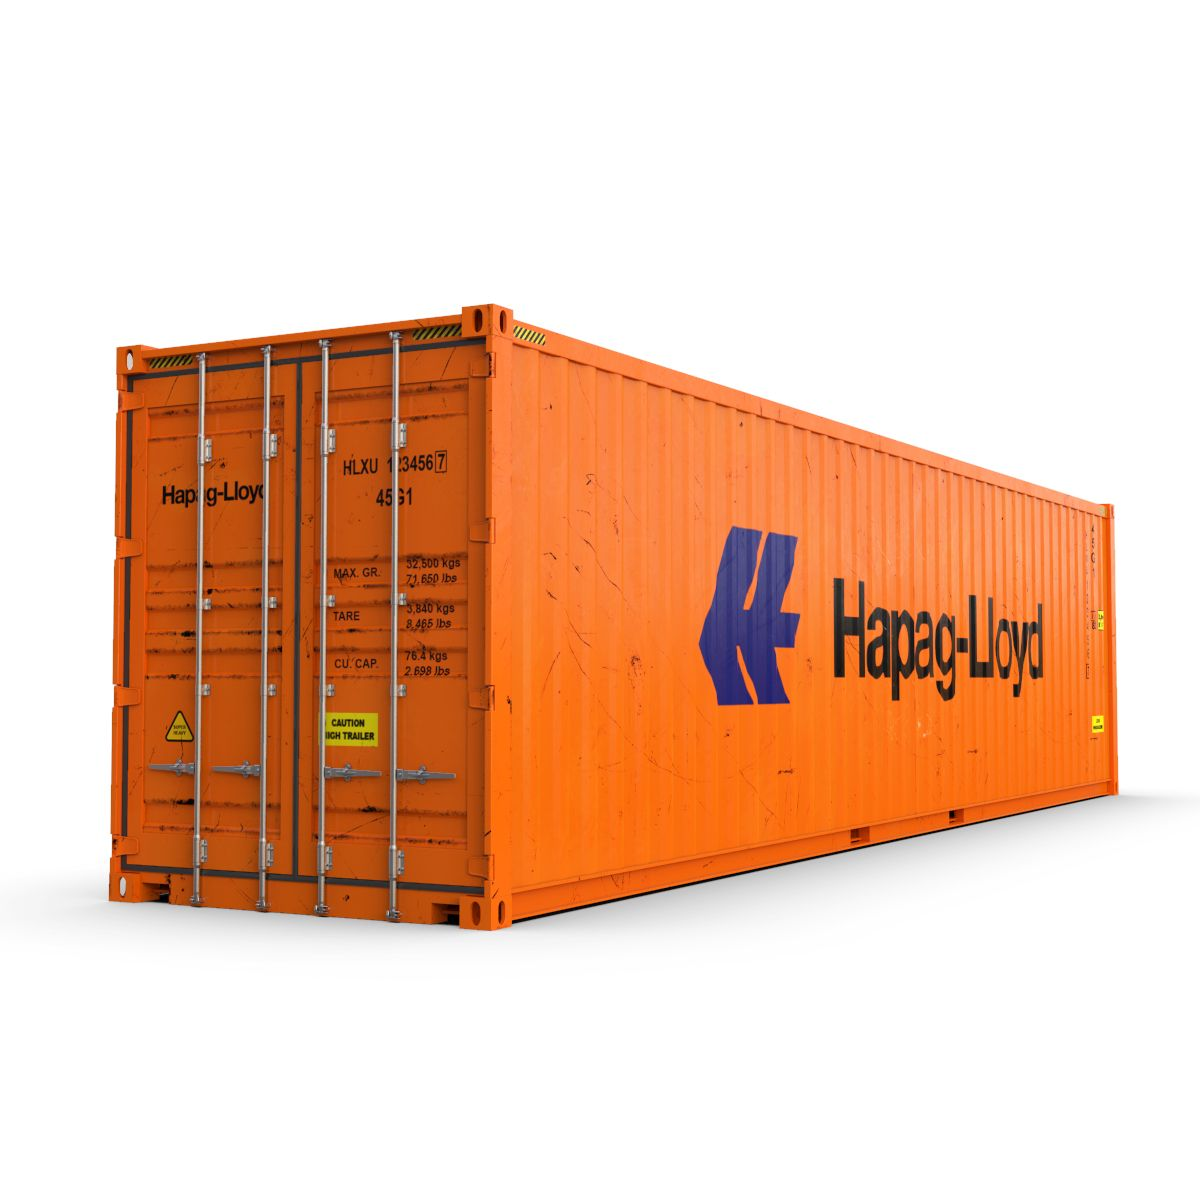 40 Feet High Cube Hapag Lloyd Shipping Container High Cube Feet Shipping Shipping Container Container Cargo Container